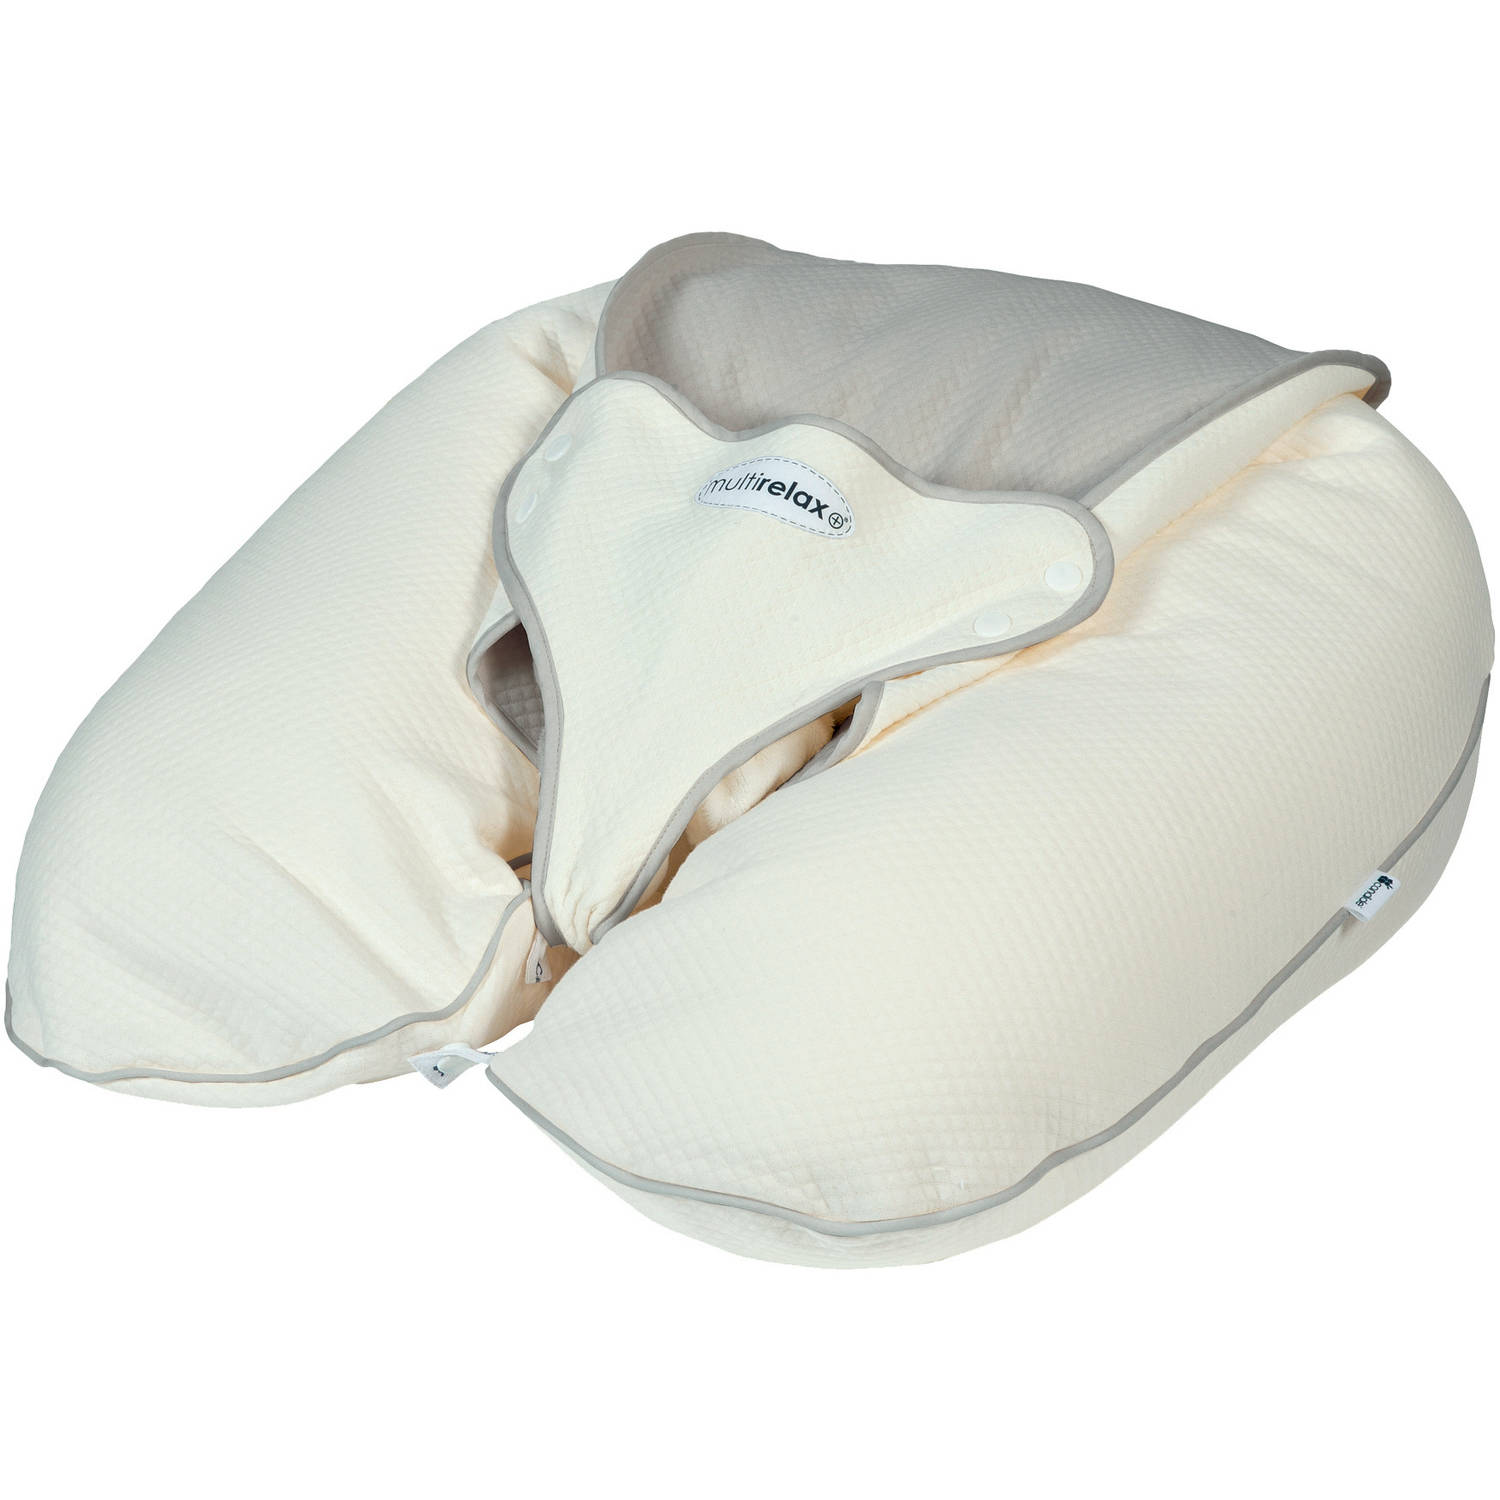 Multirelax+ 3 in 1 Maternity Pillow & Infant Seat- Jersey Cotton- Natural Light Gray by CANDIDE BABY GROUP